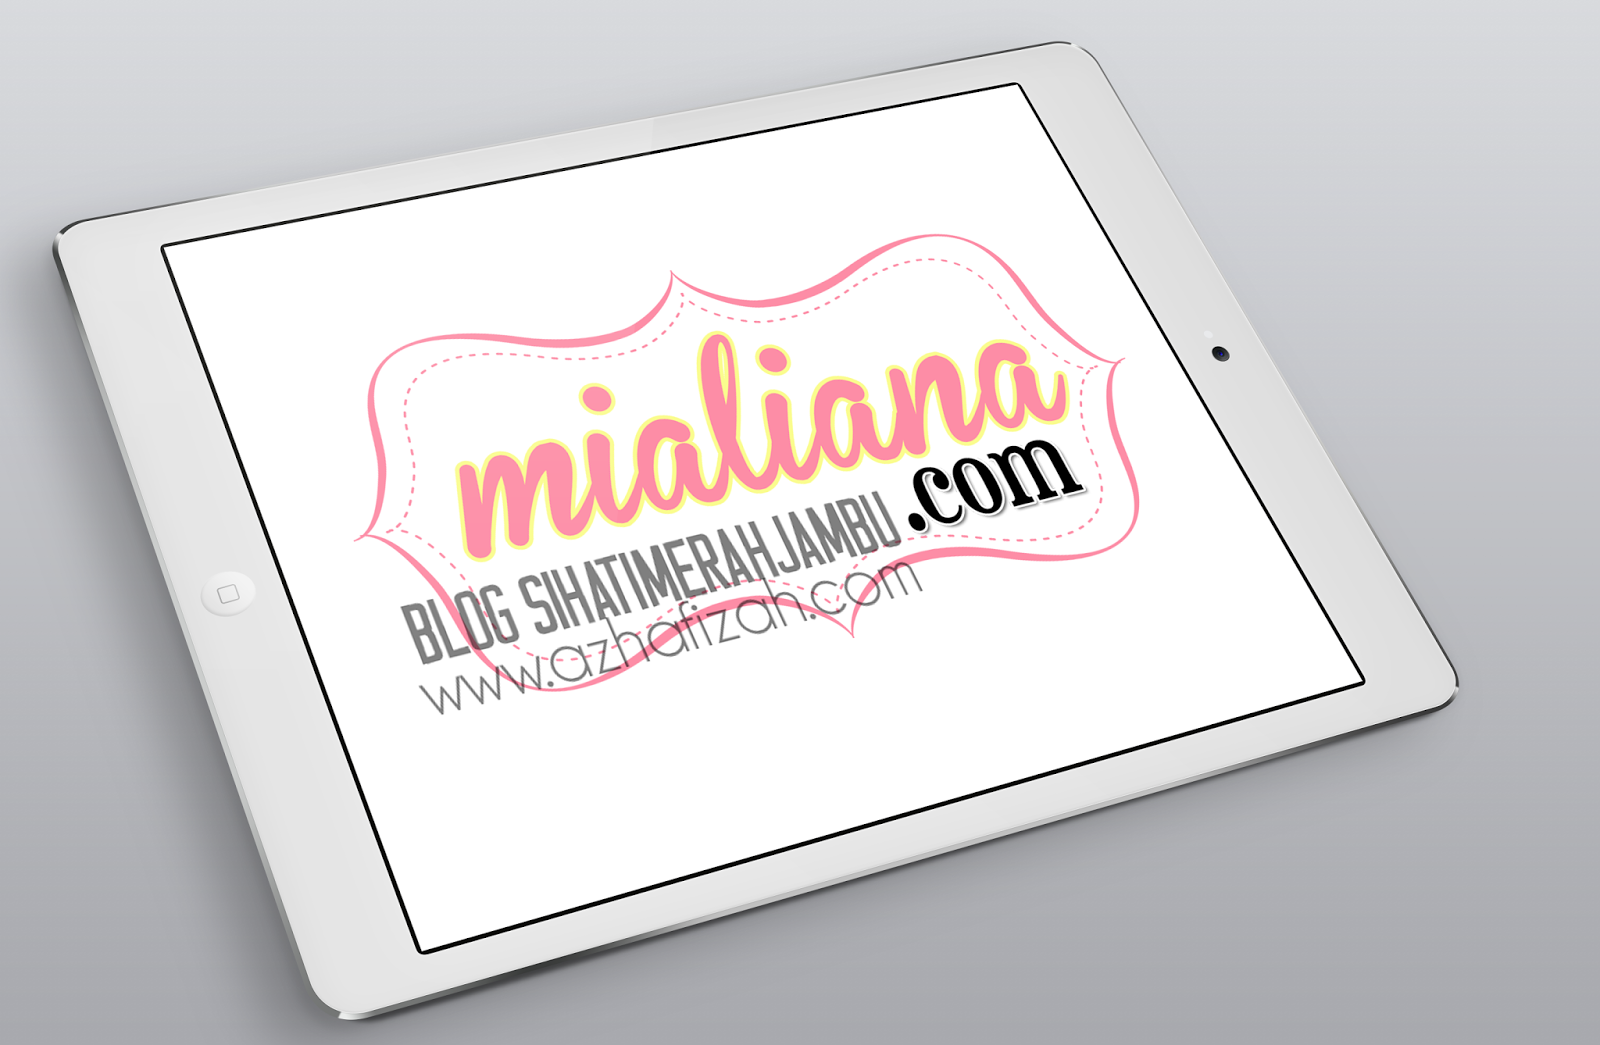 Design Watermark Blogger Mialiana com